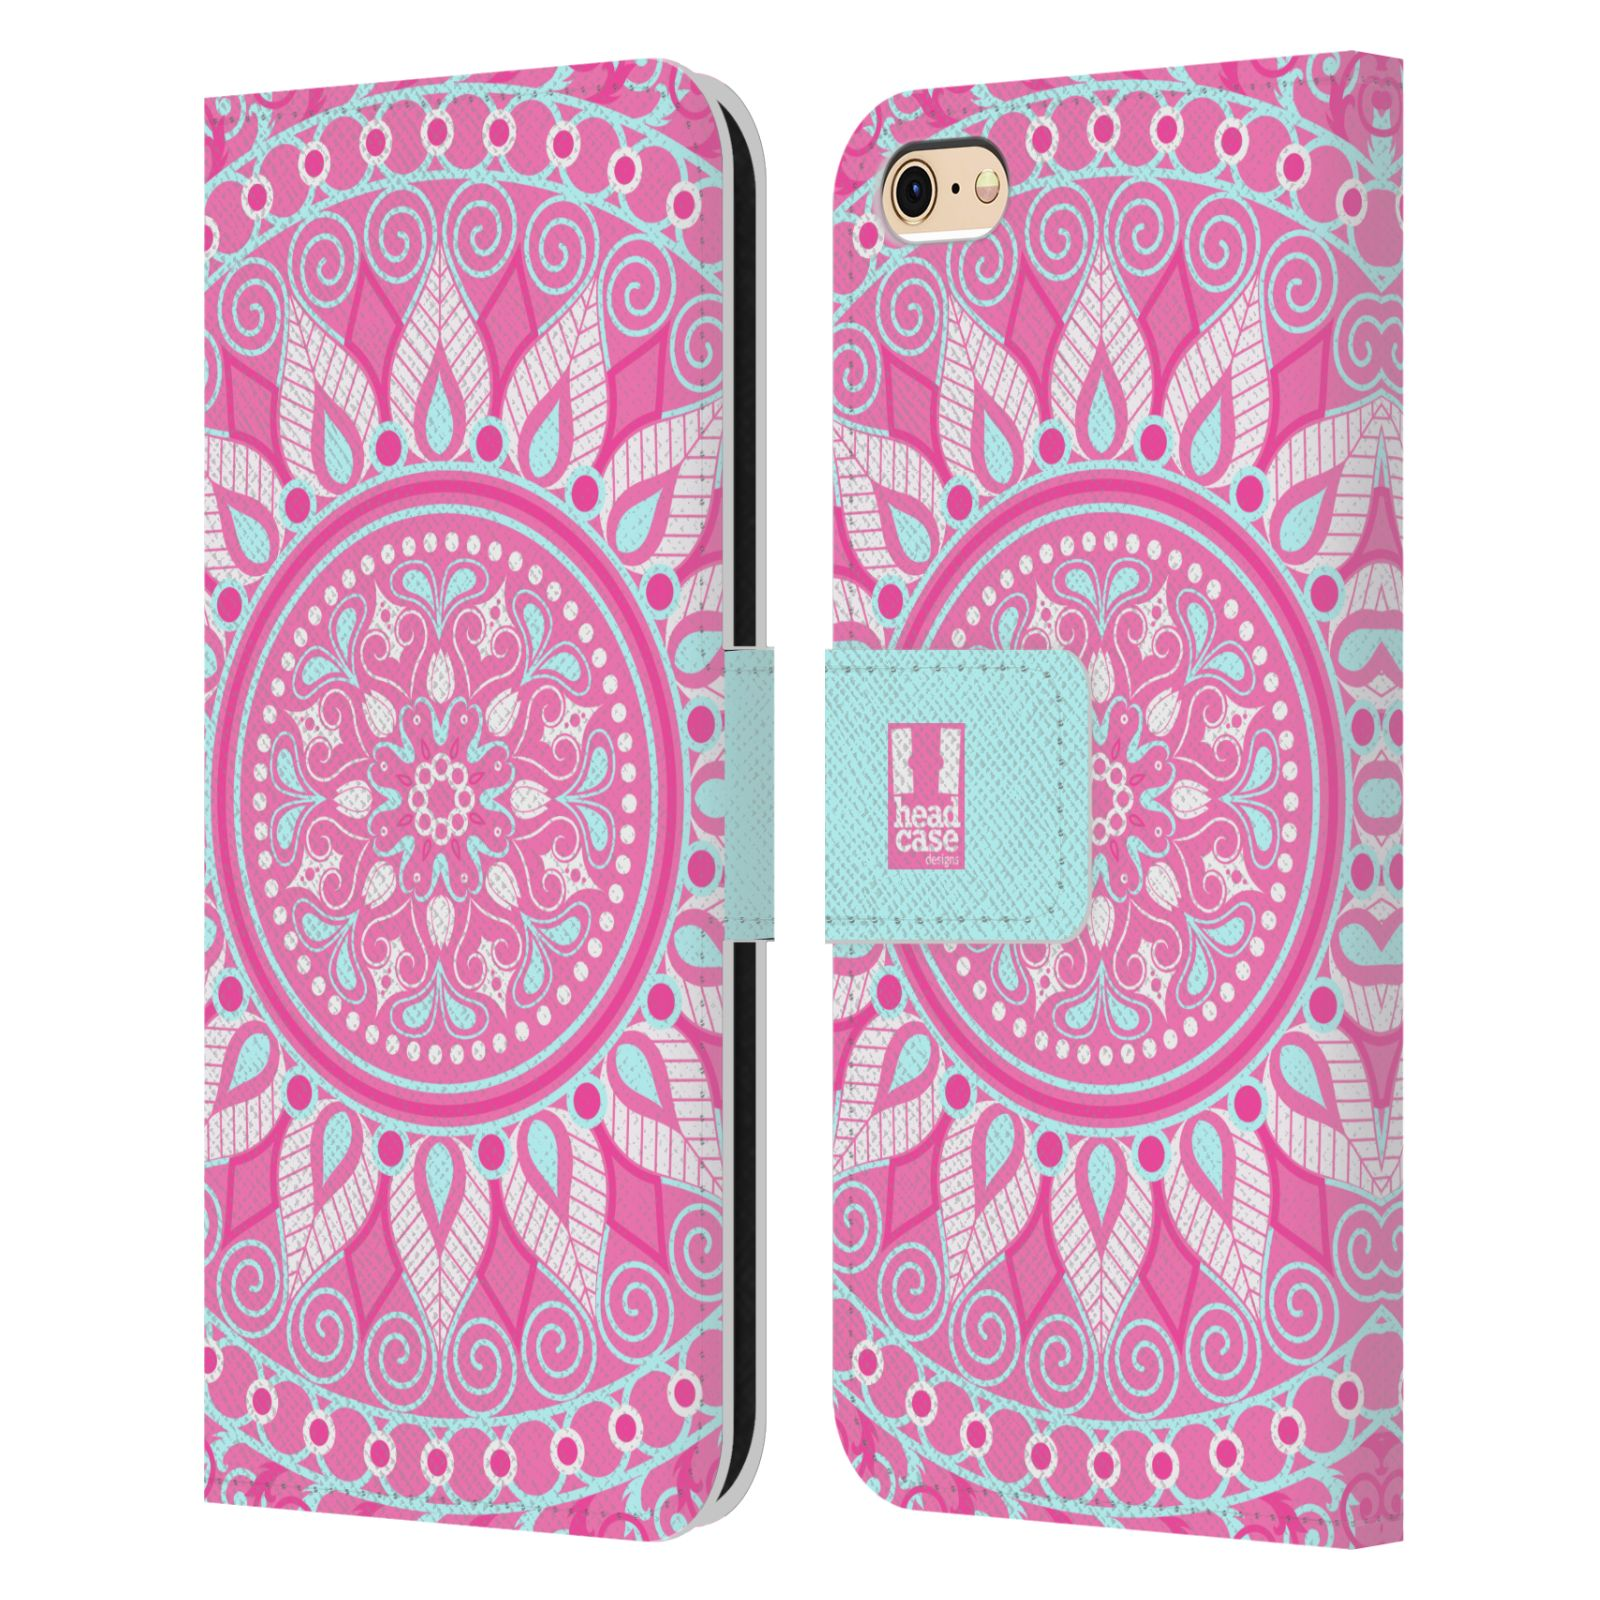 HEAD CASE DESIGNS MANDALA LEATHER BOOK WALLET CASE COVER FOR APPLE iPHONE PHONES